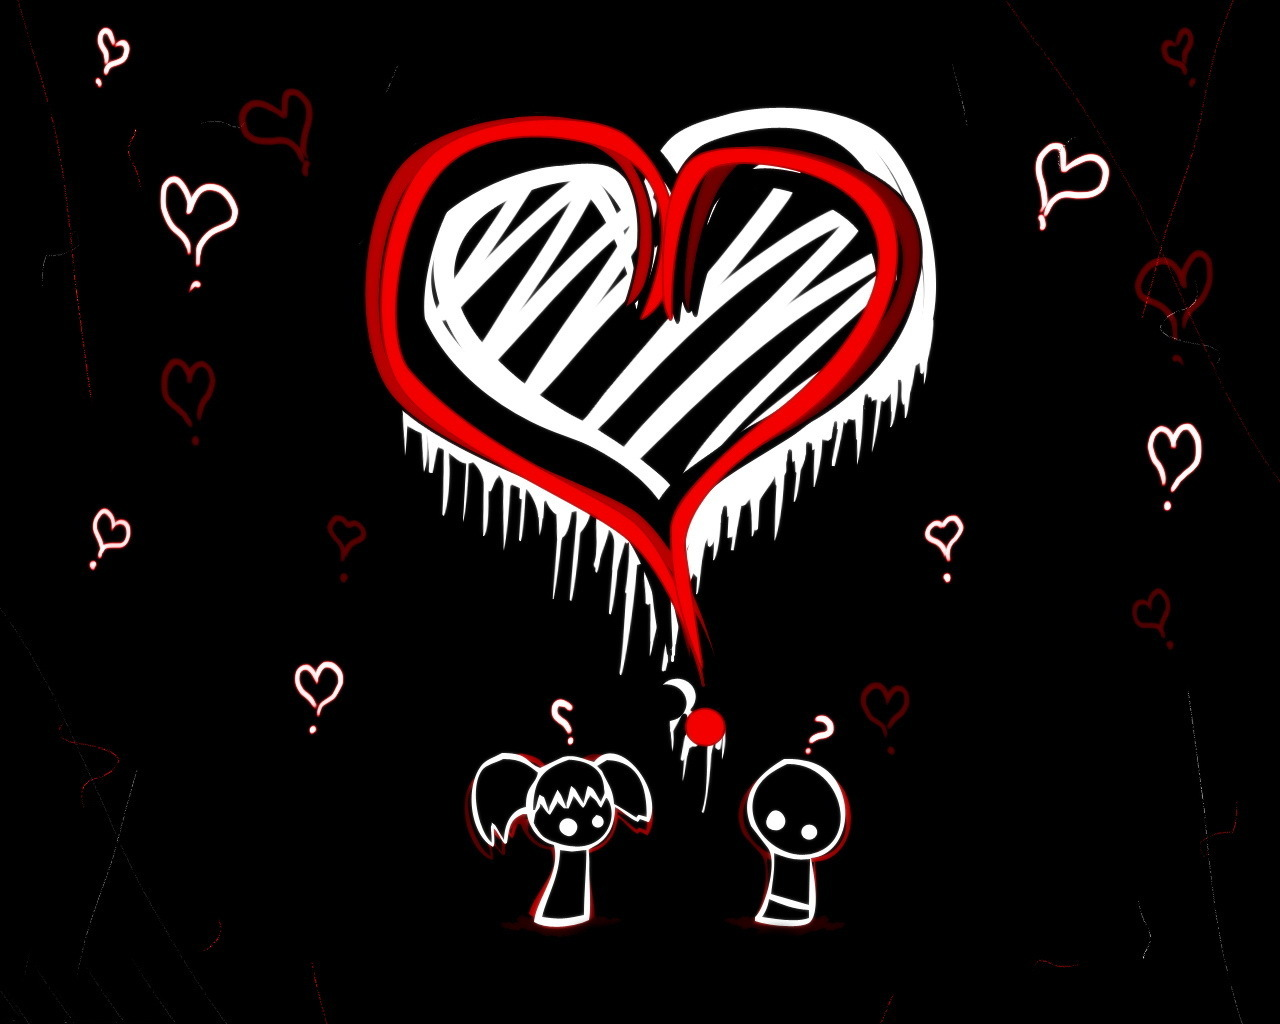 Emo Love Couples Hd Wallpapers And Pictures: Cute Emos Images